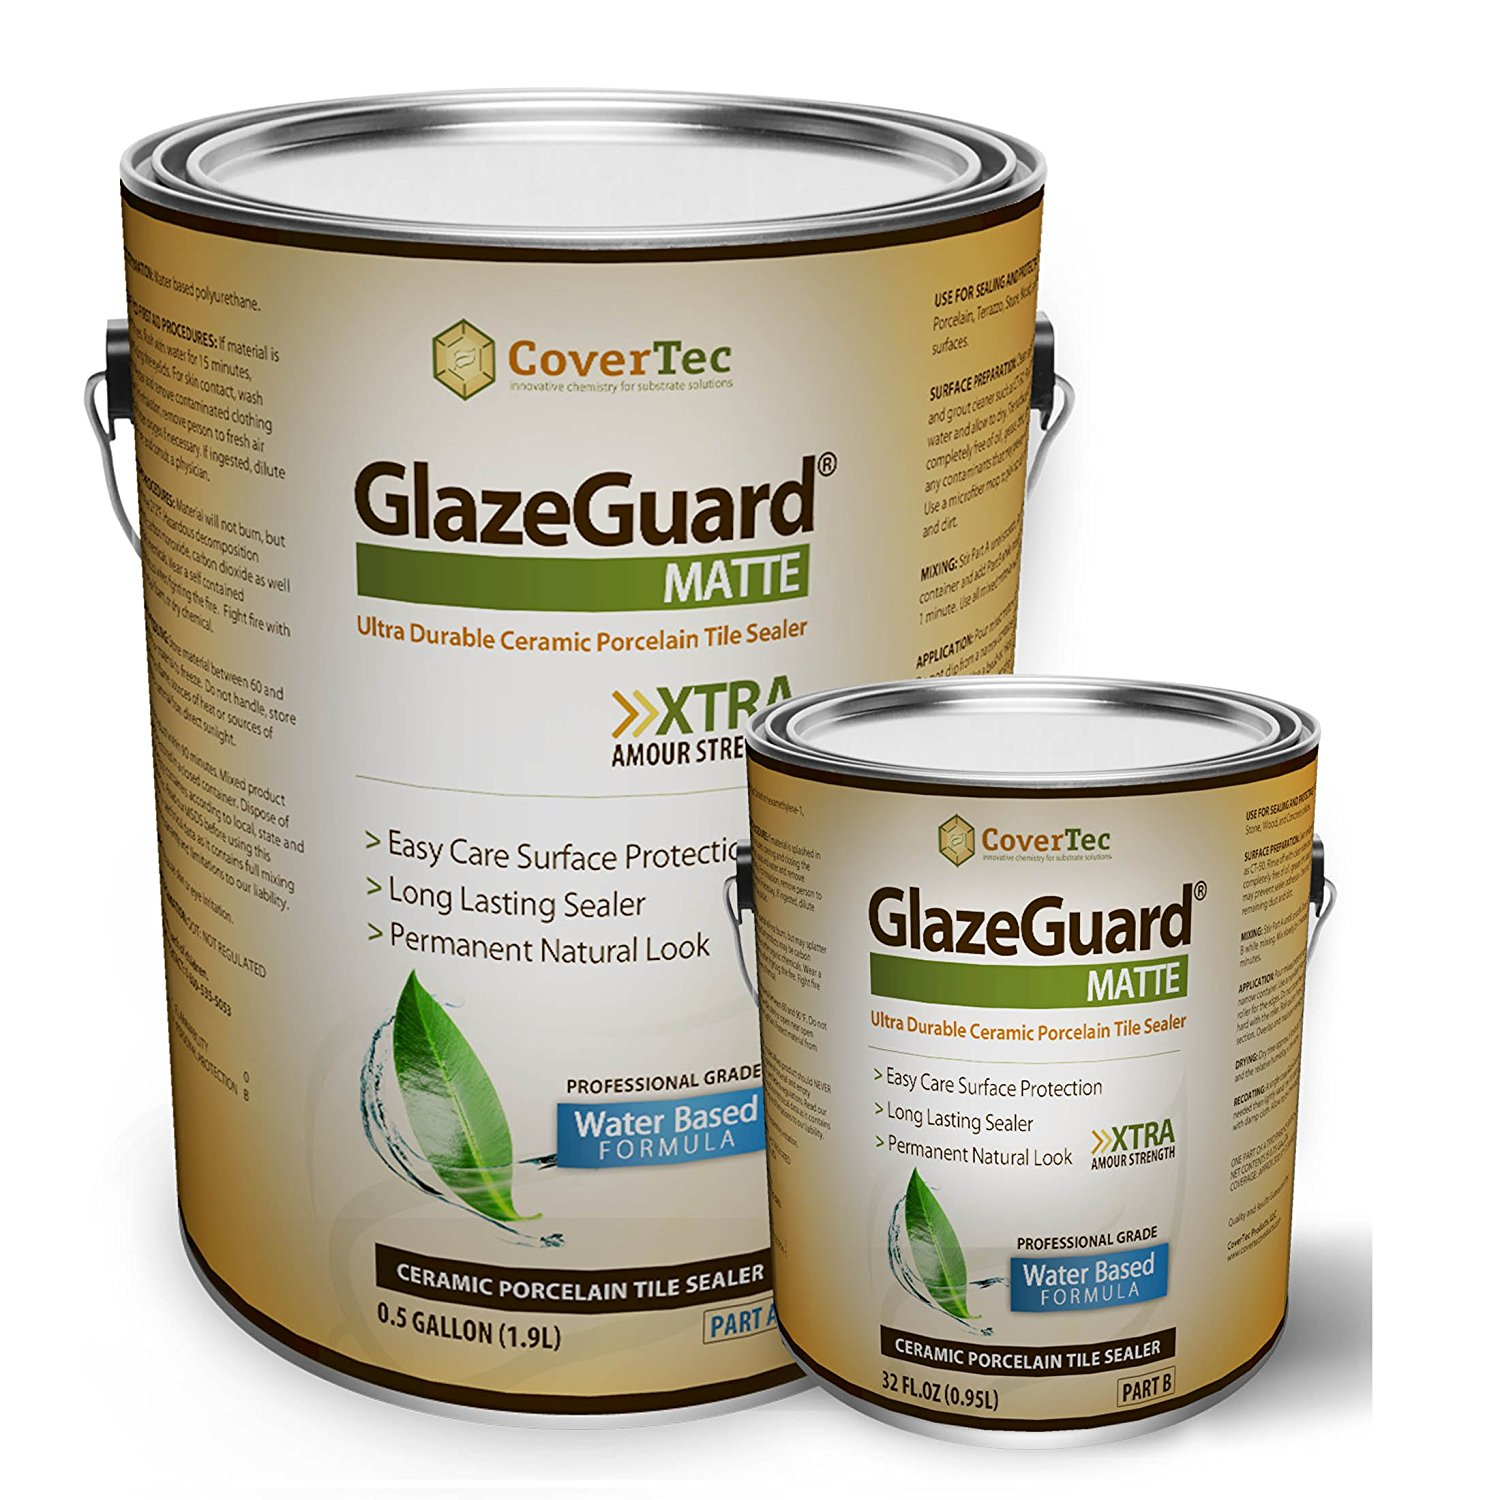 GlazeGuard Matte Sealer For Ceramic, Porcelain, Stone Tile Floor /Wall Surfaces (0.75 Gal - Pro Grade (2) Part Kit)